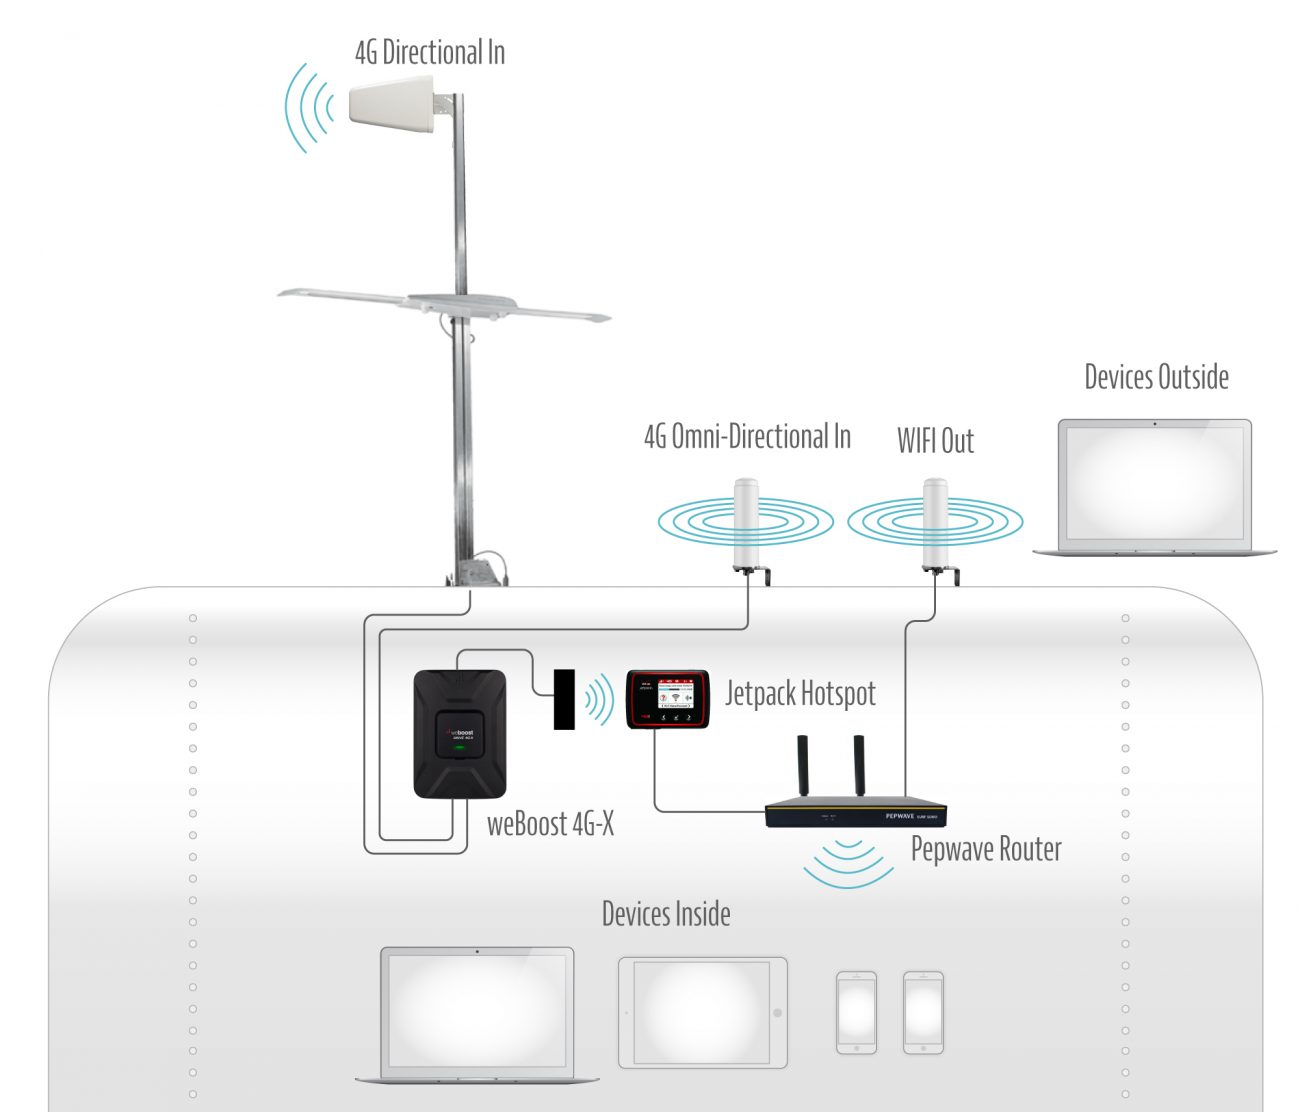 internet setup illustration